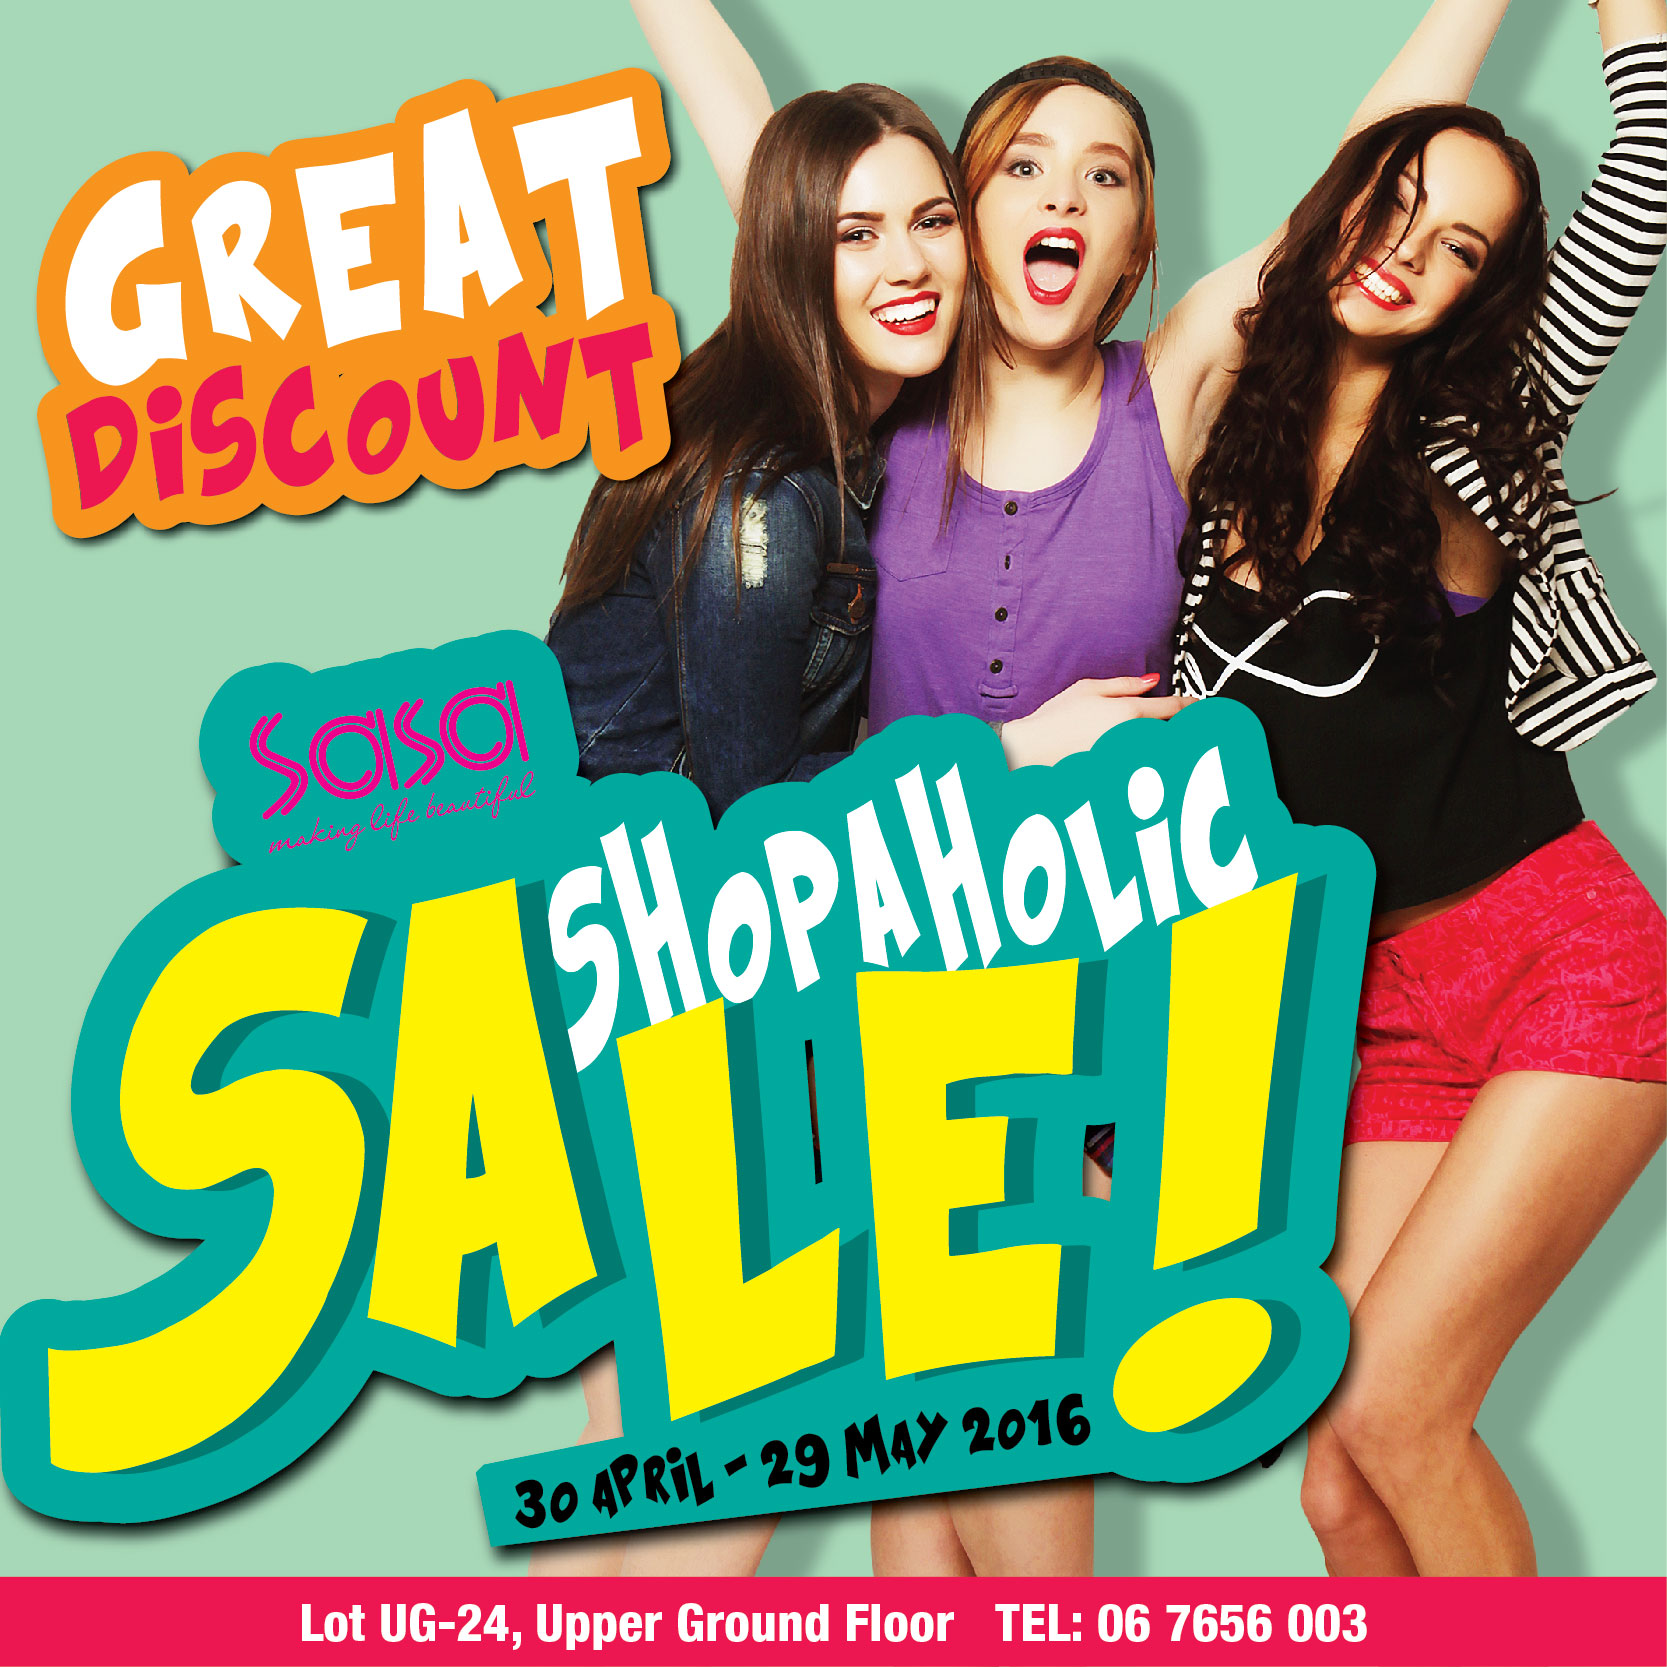 Shopaholic Sale